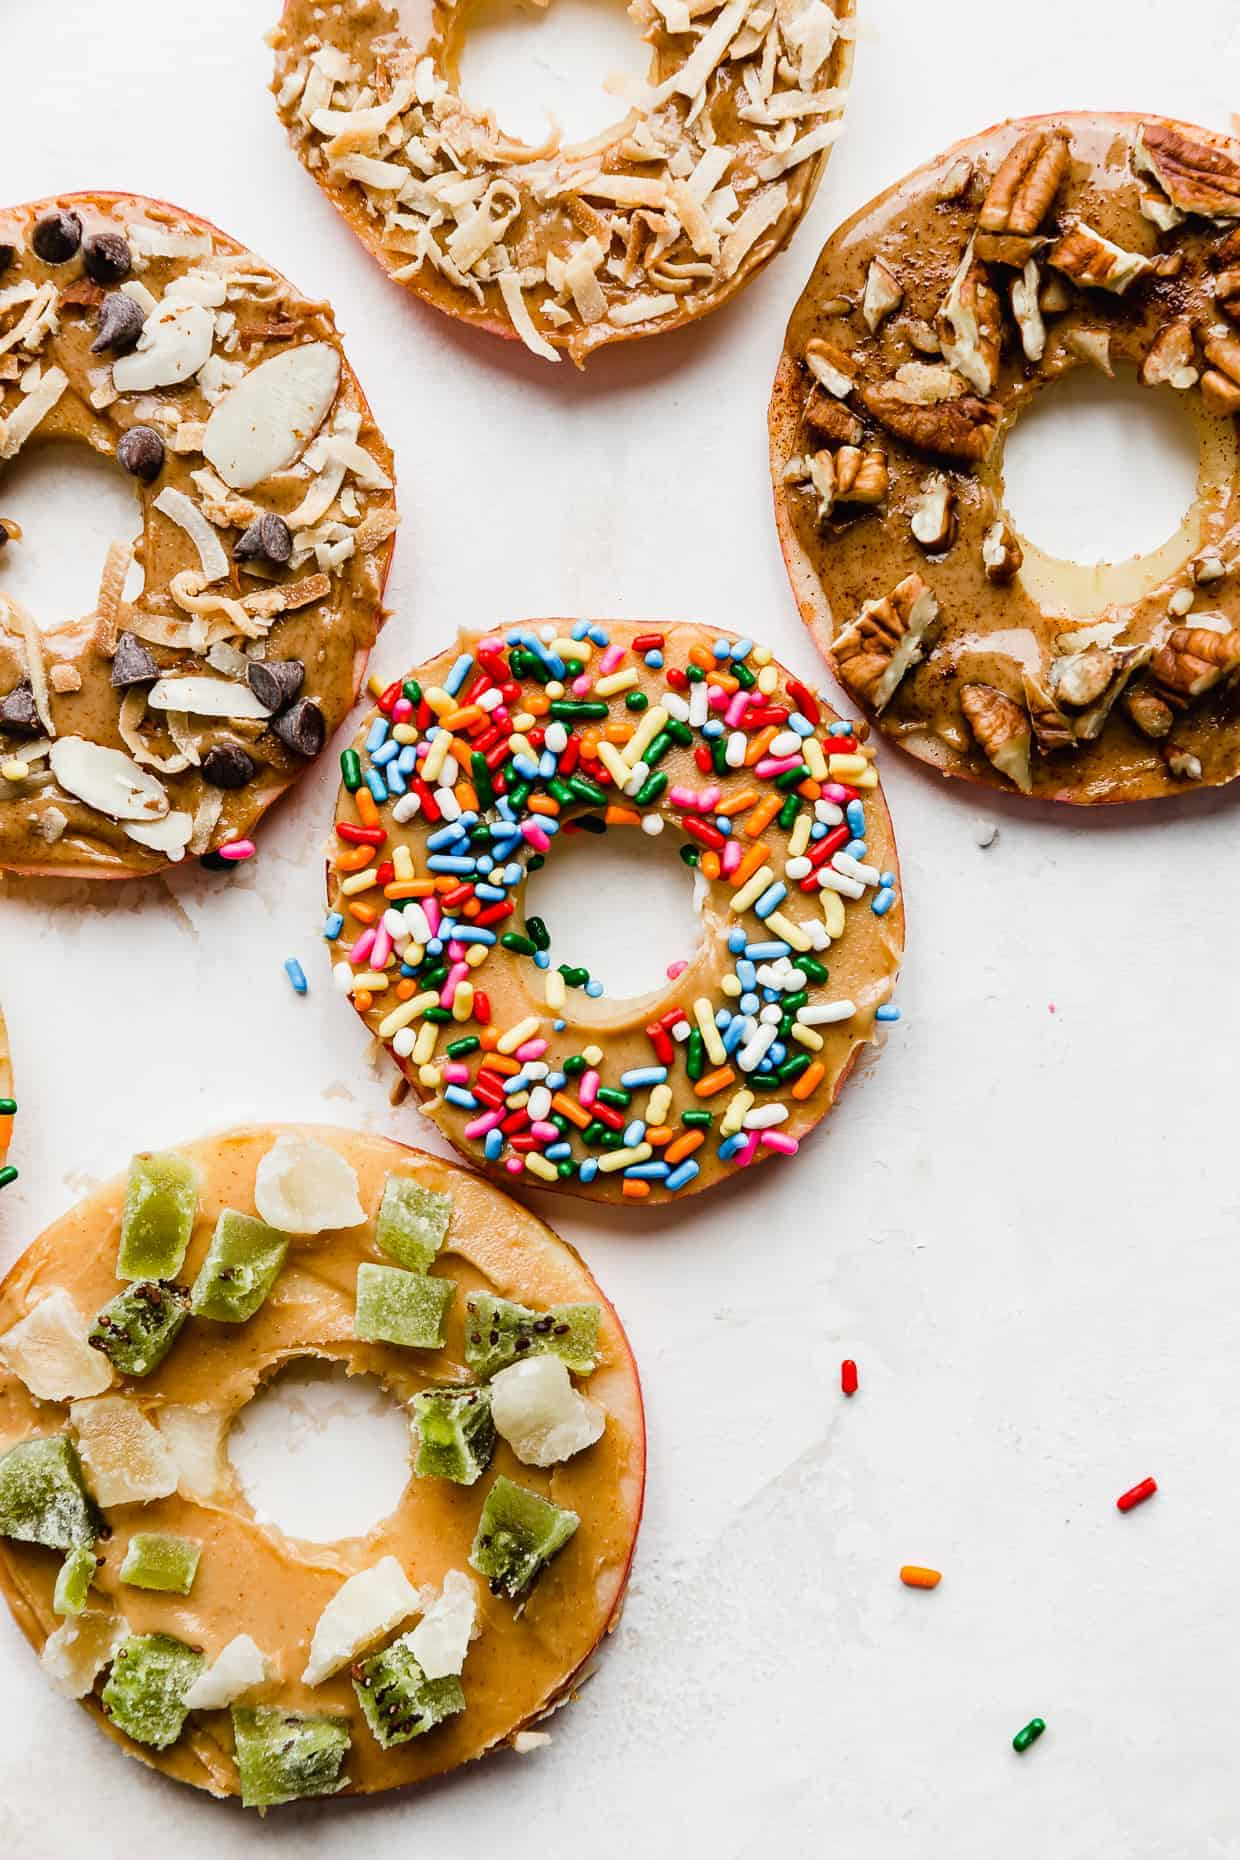 Donut Apples against a white background, with an array of toppings: sprinkles, nuts, chocolate.